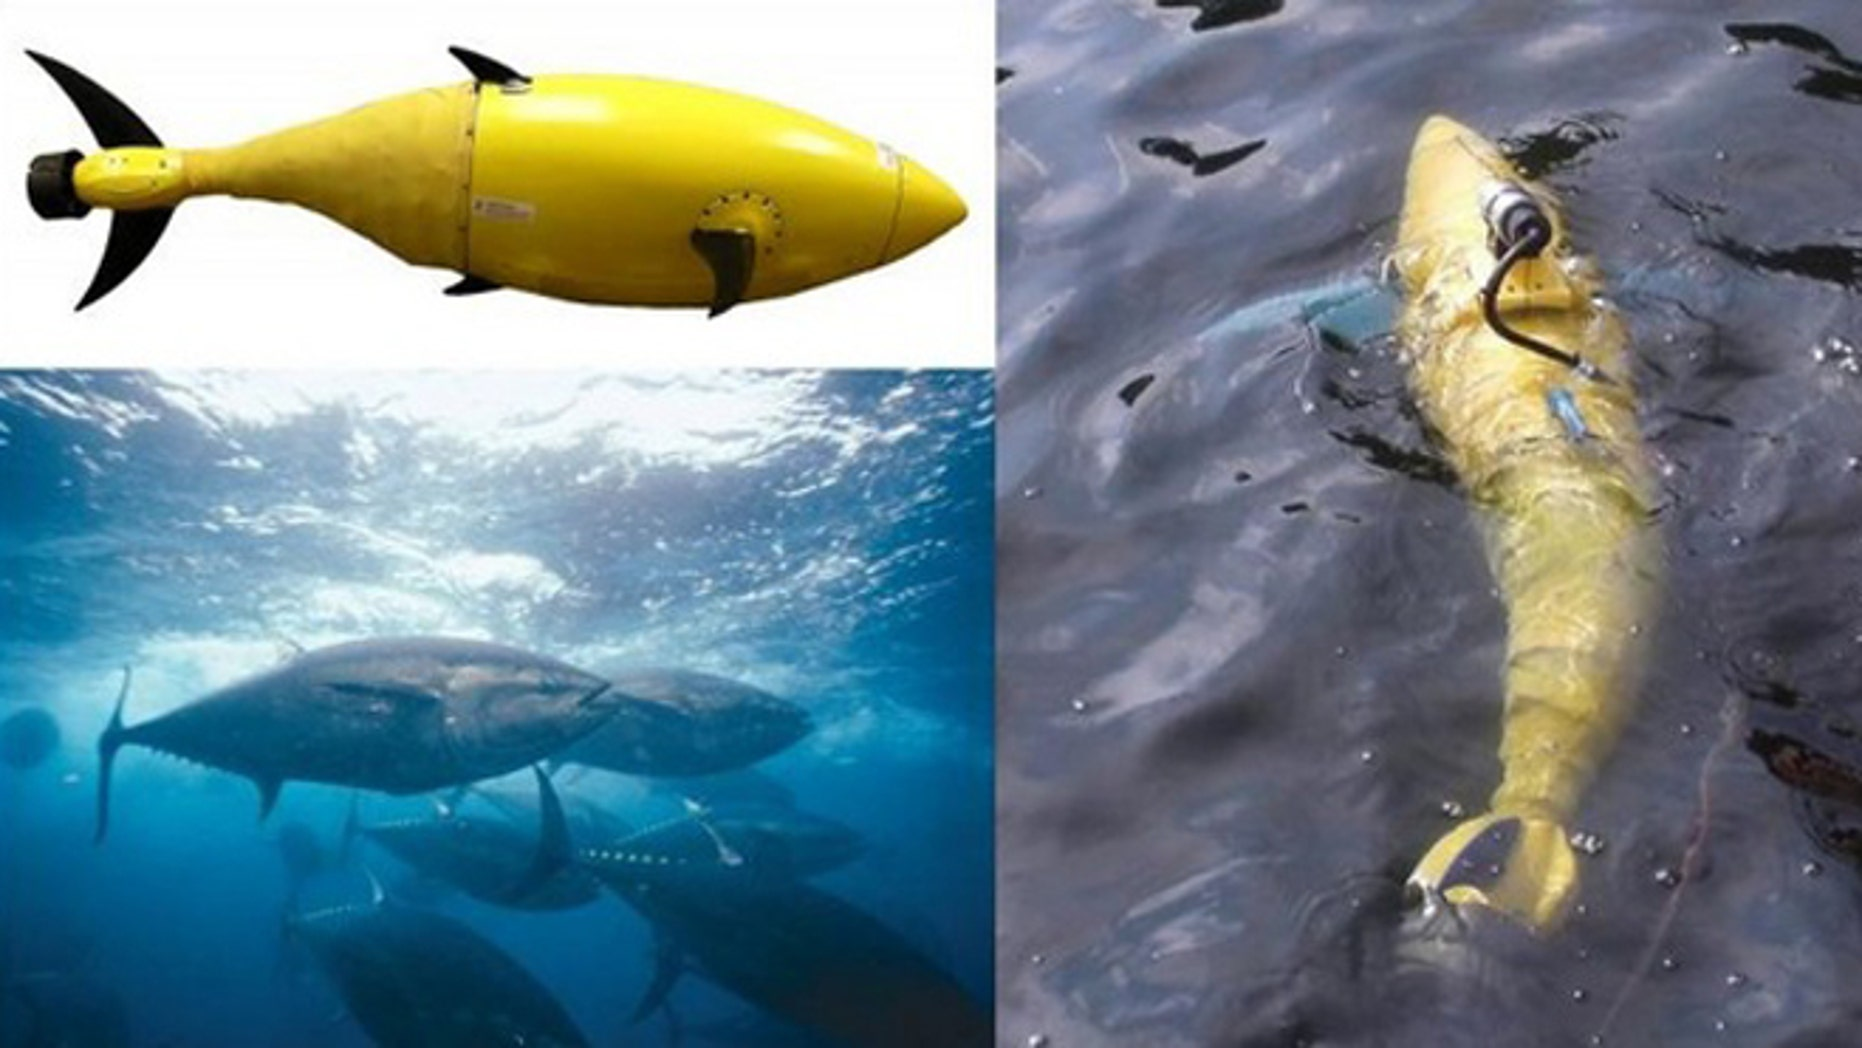 The BIOSwimmer is an underwater robot designed in the shape of a robotic tuna fish for surveillance and patrols.